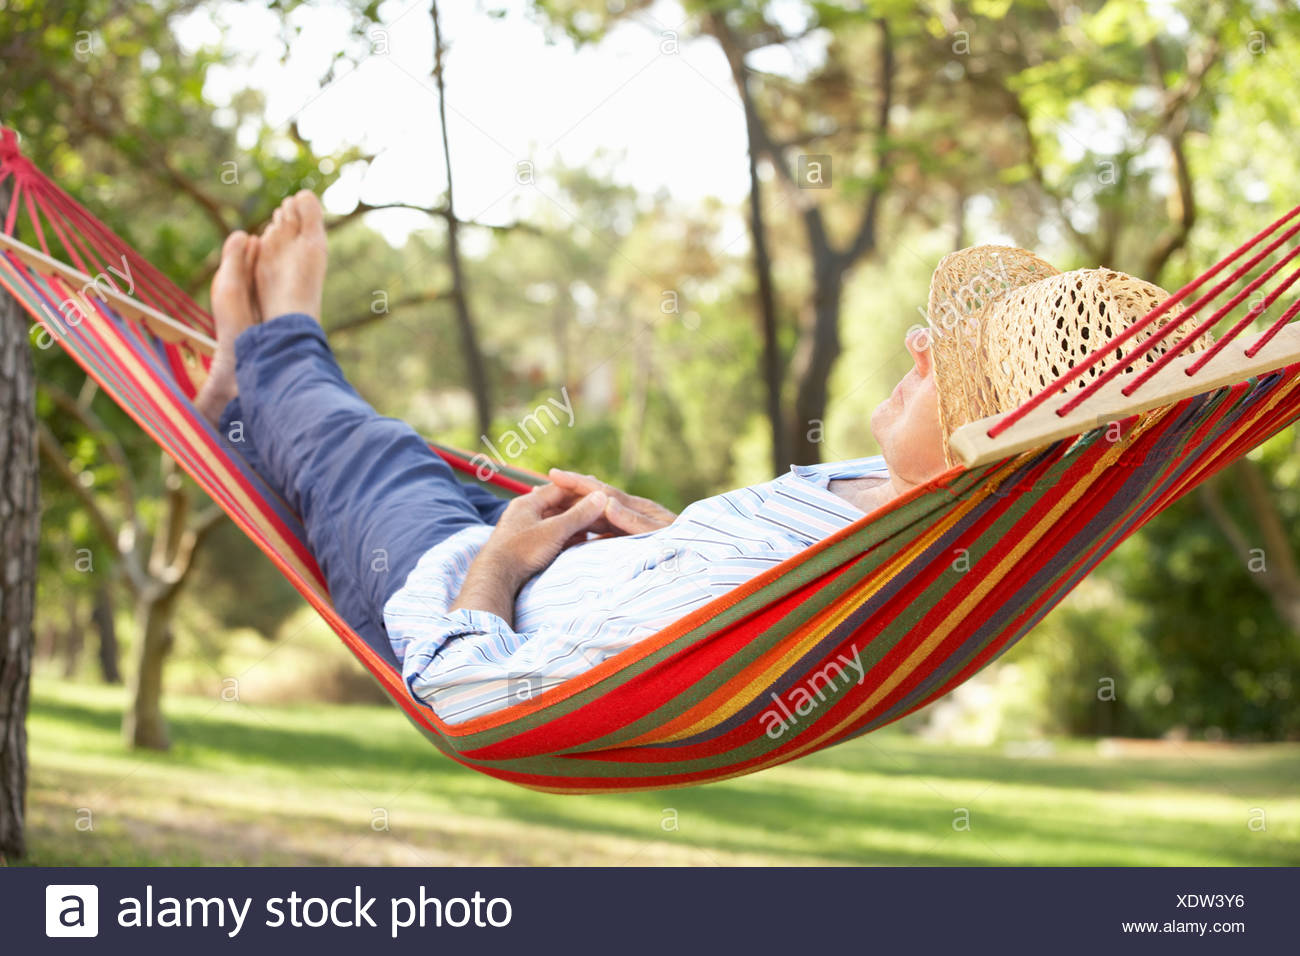 on woods bag stock depositphotos campsite tree biking camping mtb summer in sleeping photo cycling green adventure mountain hammock when and mountains travel backpack trip with bike